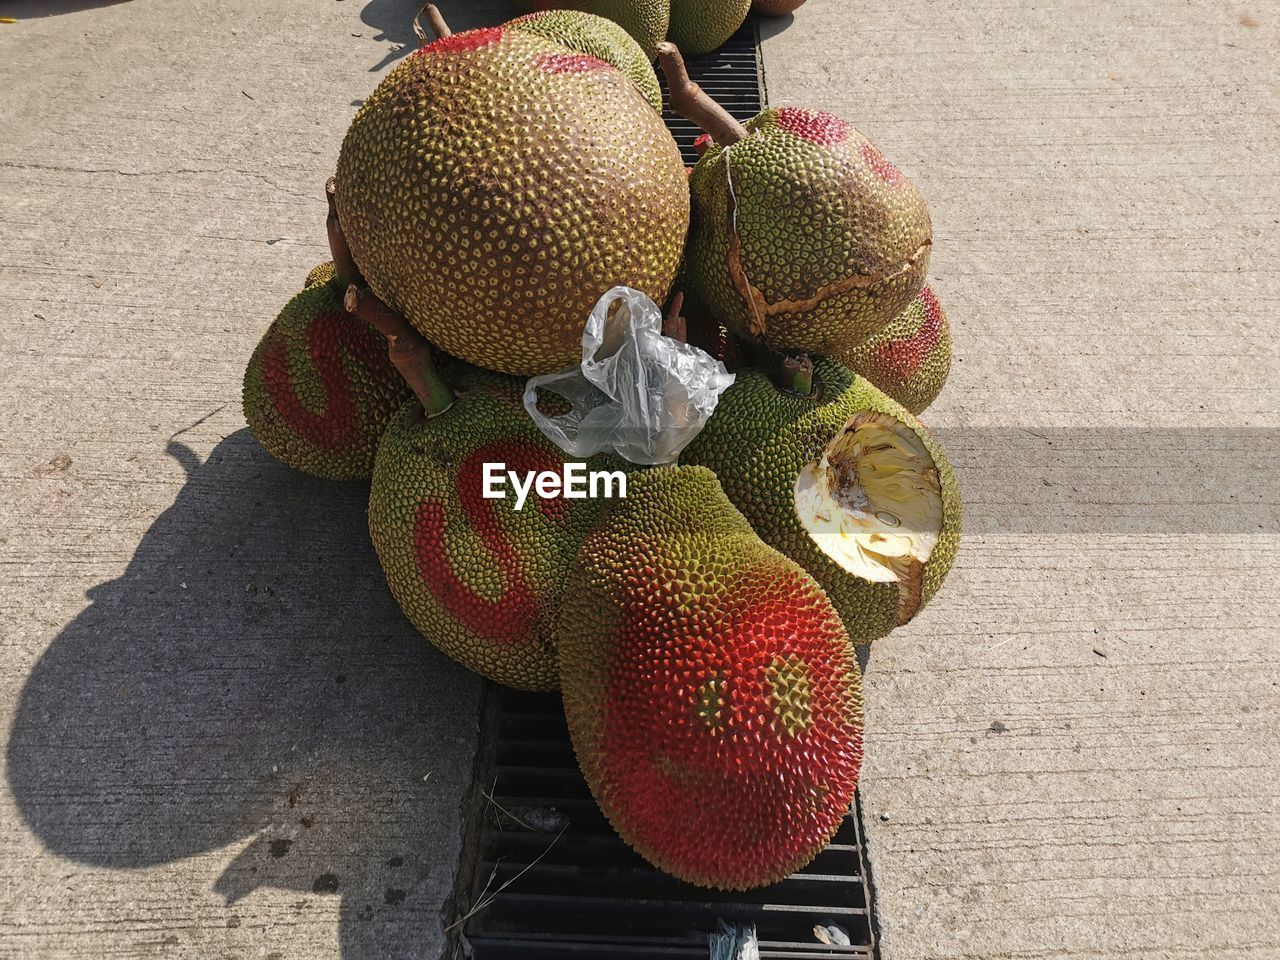 HIGH ANGLE VIEW OF FRUITS AND PLANT